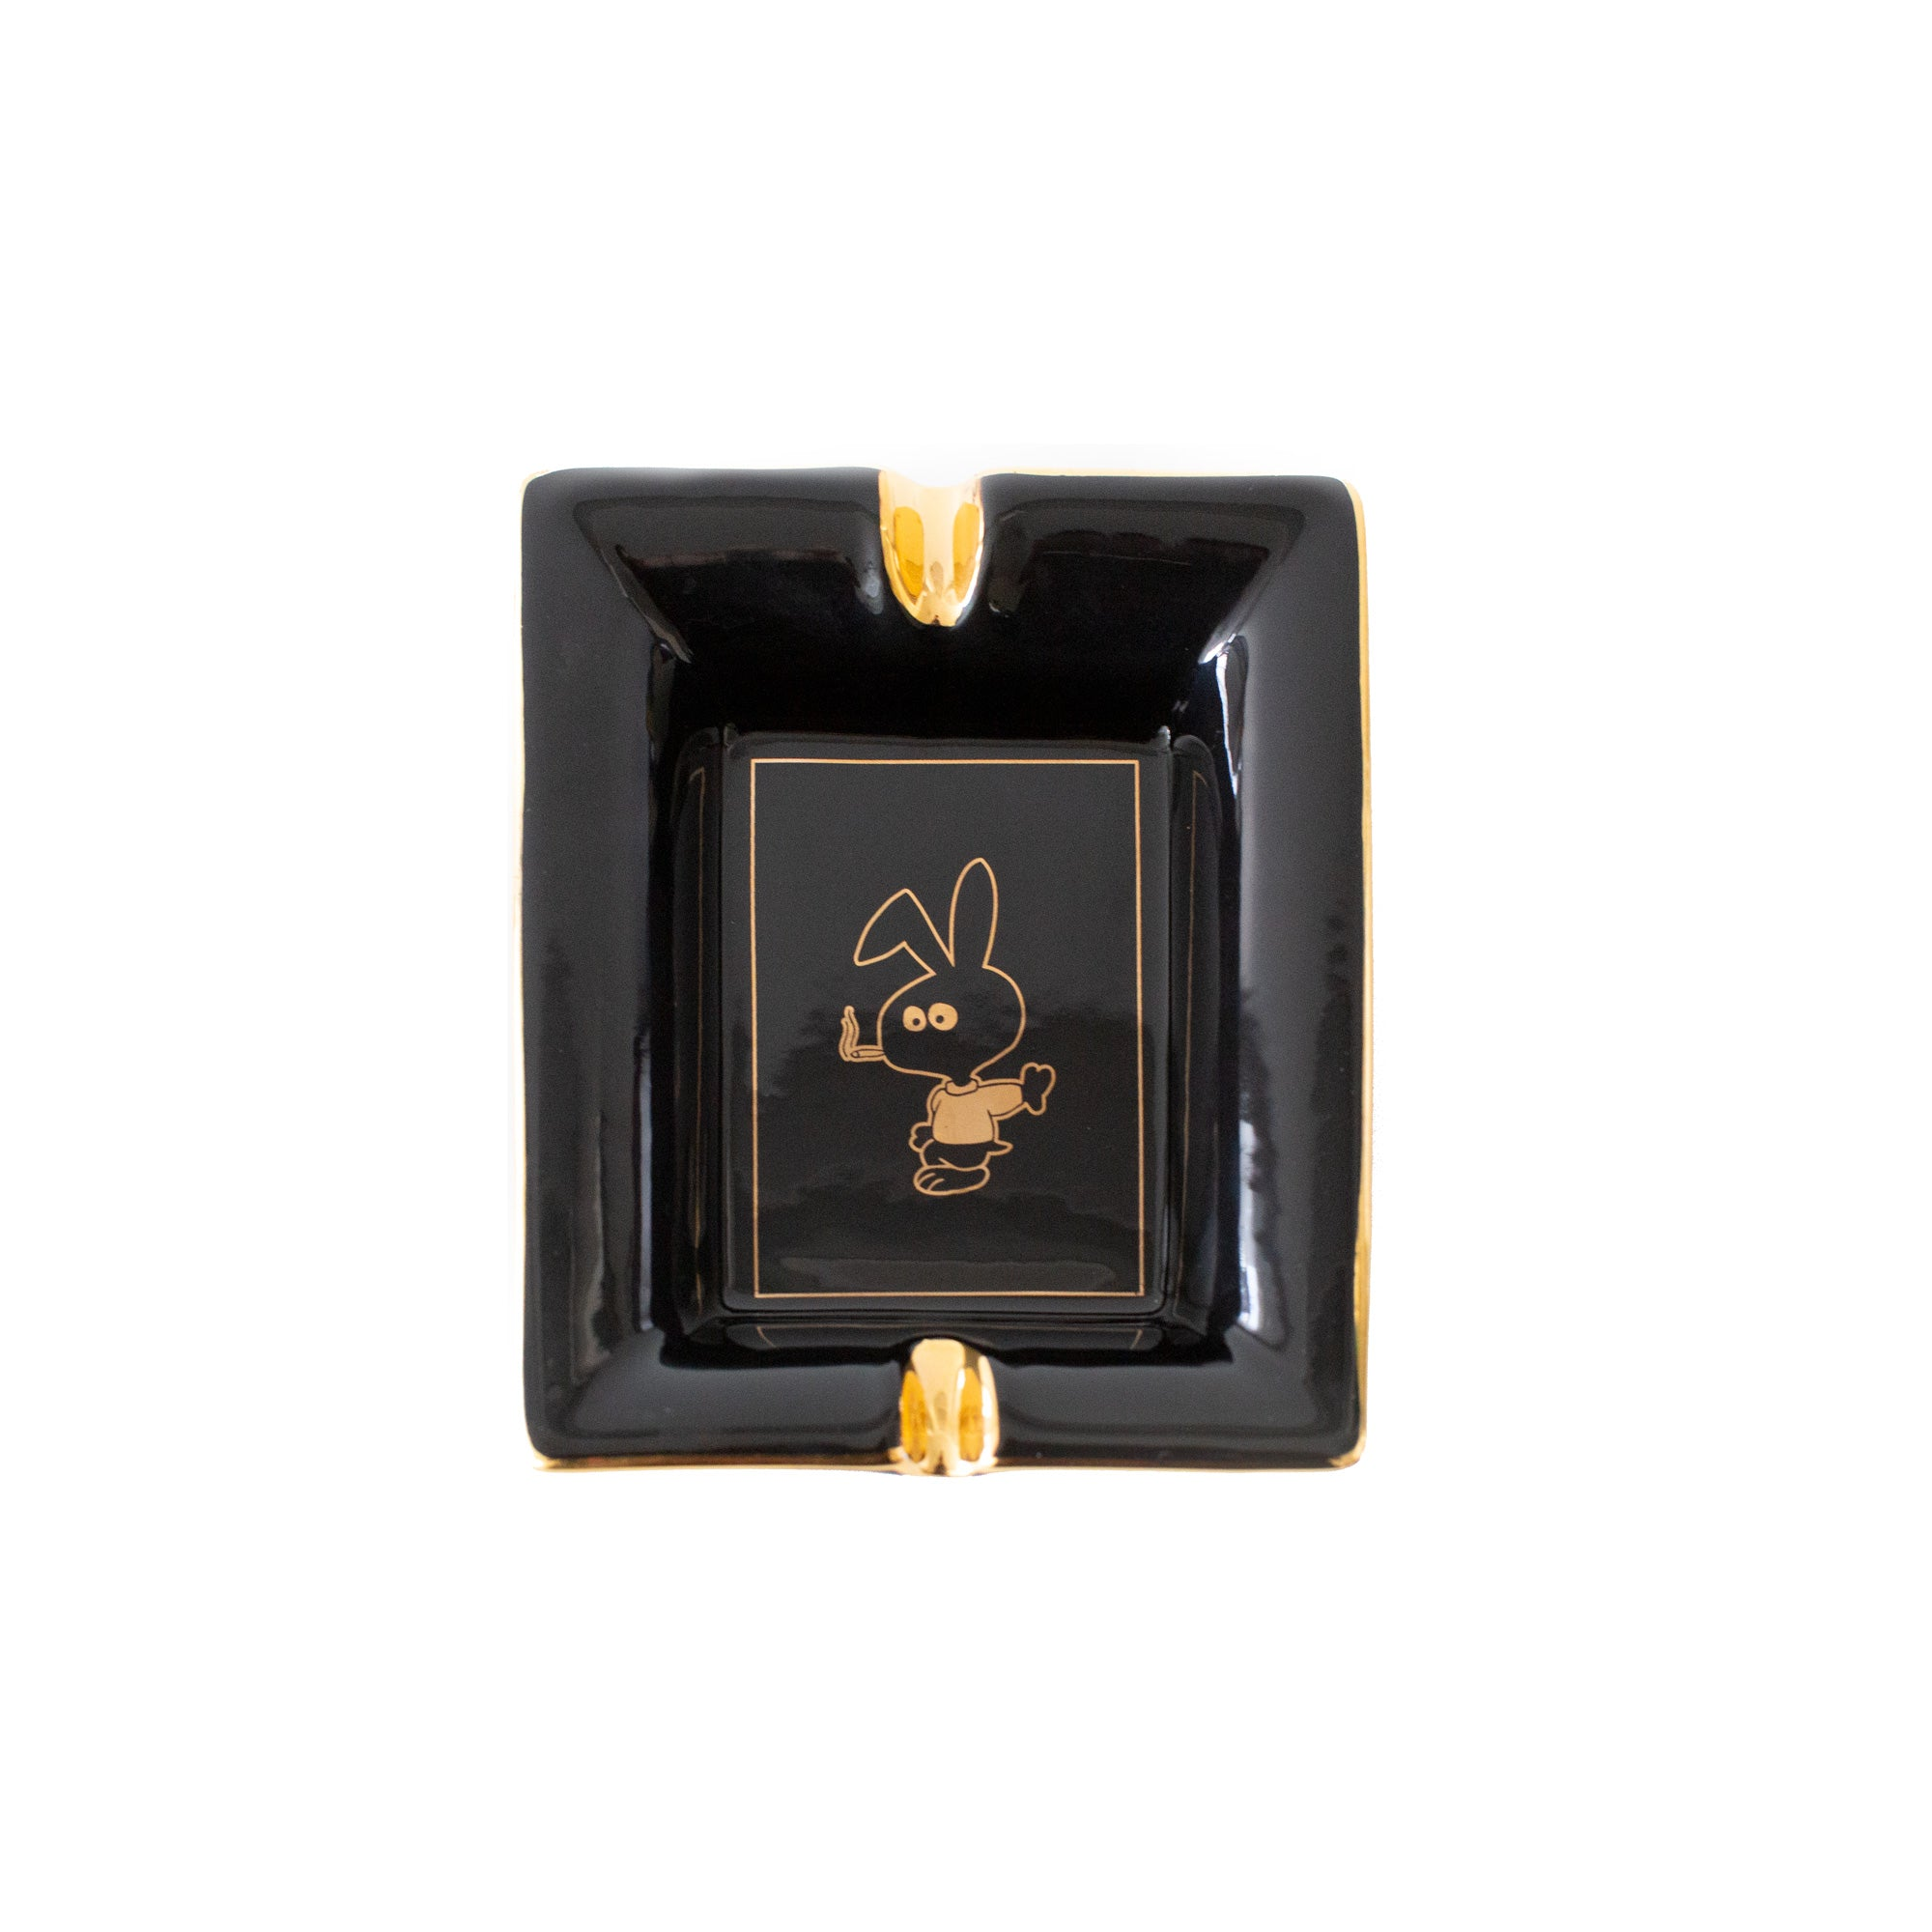 COLD WORLD COUNTER ACCESSORIES GOLD BUNNY ASHTRAY